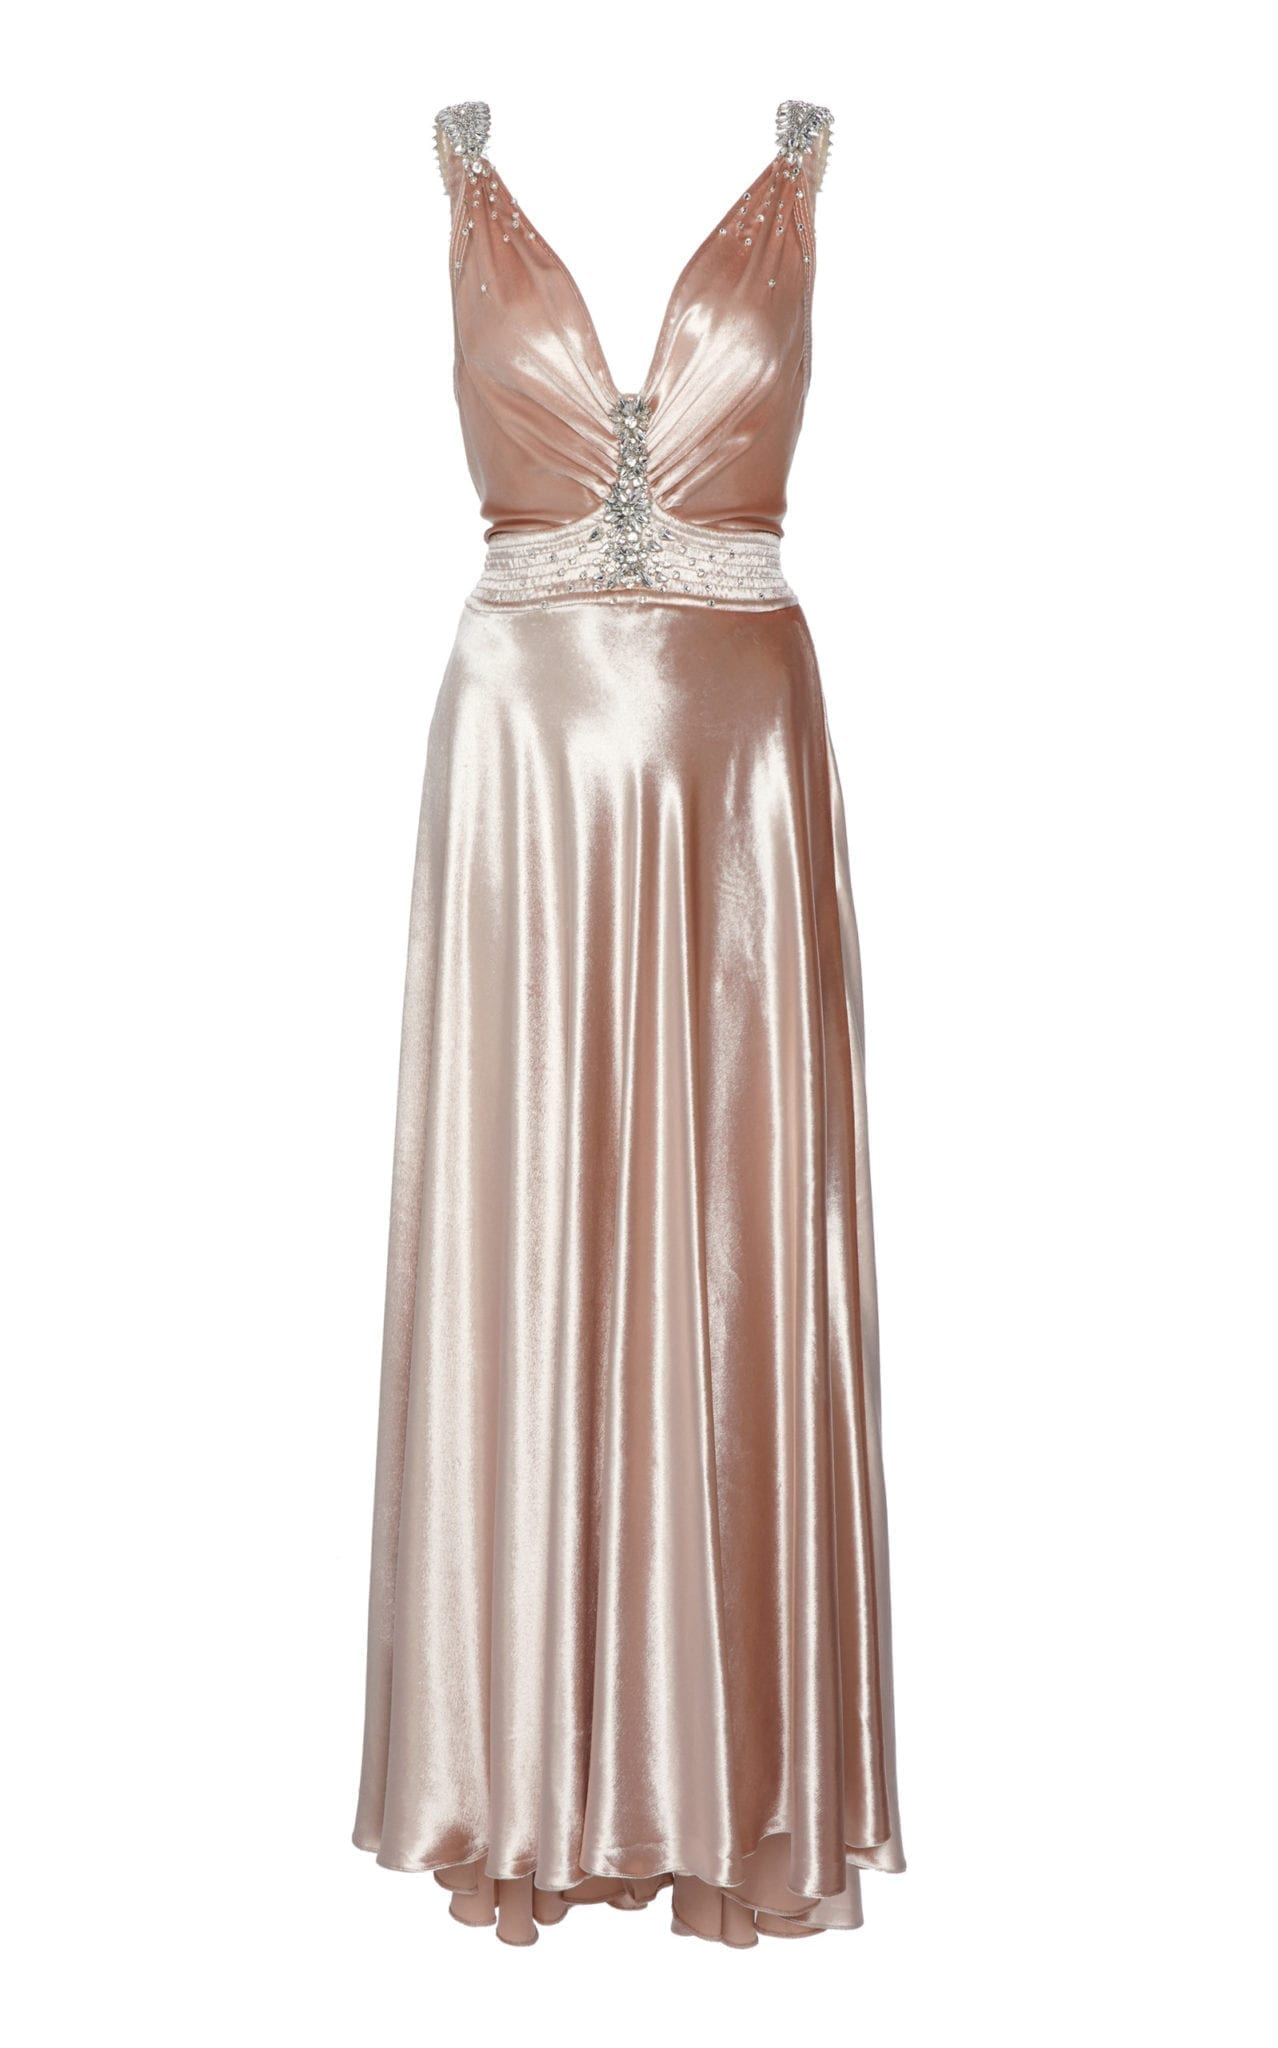 PACO RABANNE Crystal-Embellished Velvet Midi Dress